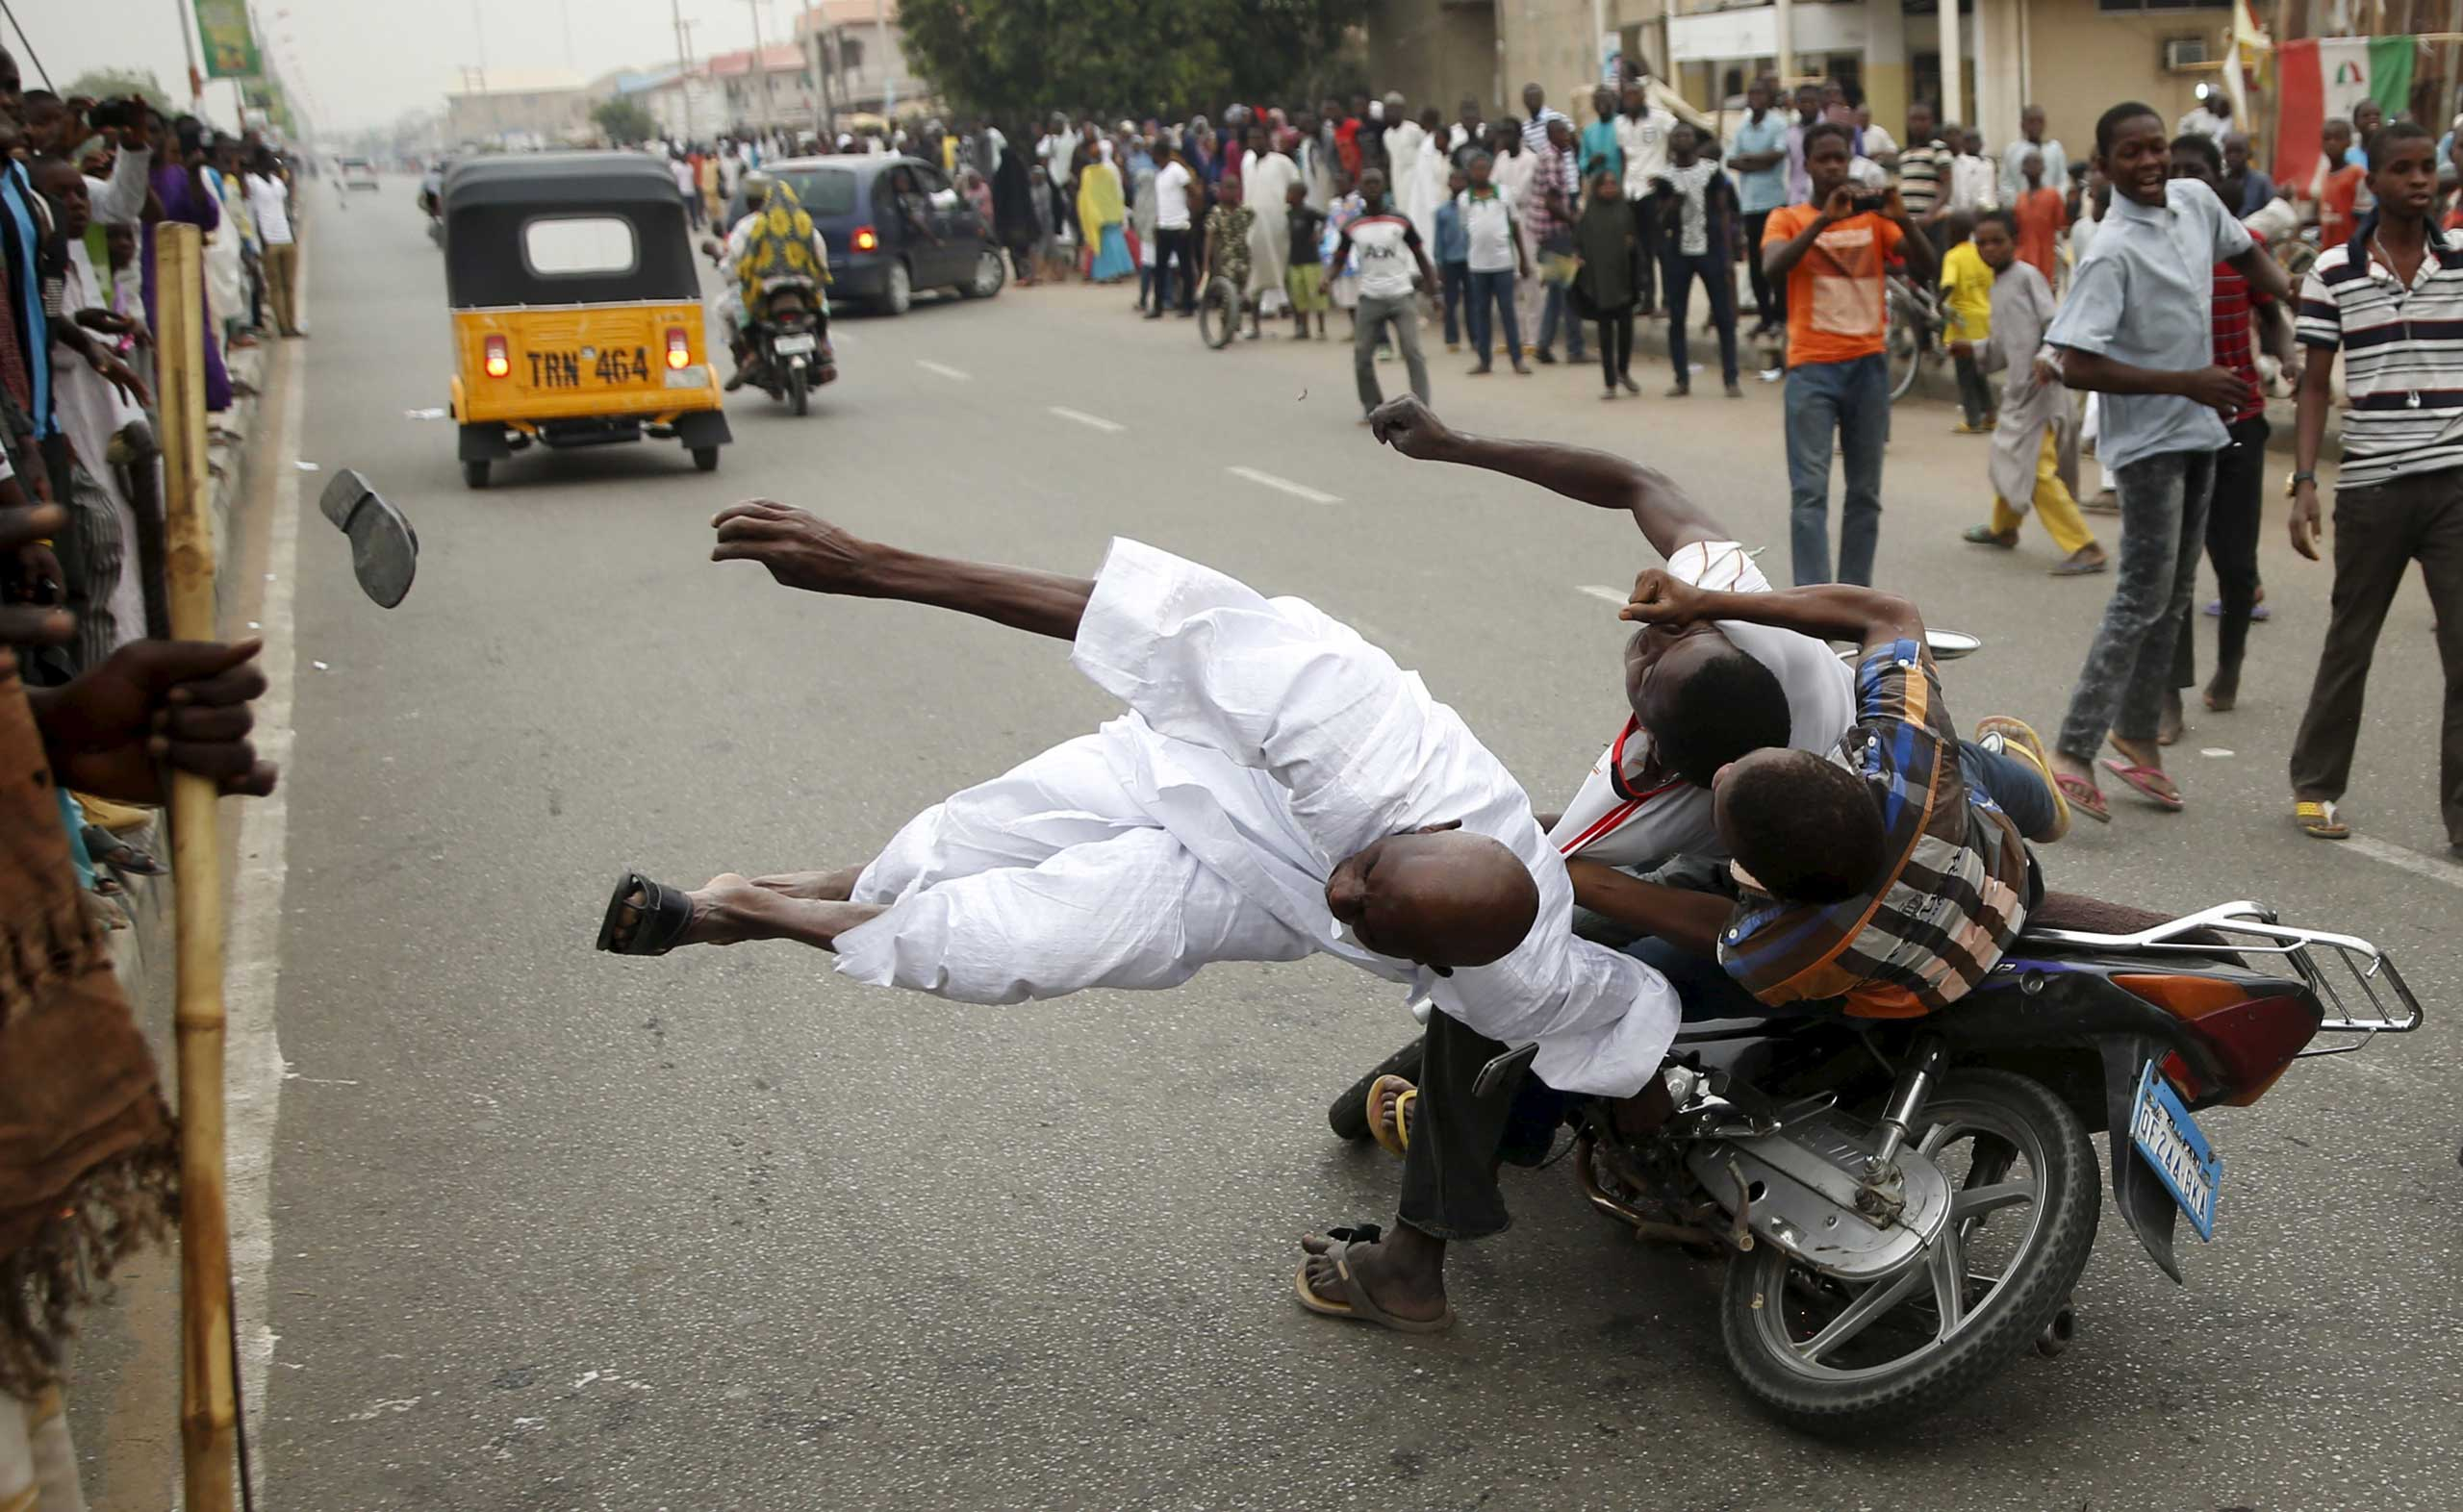 Supporters of the presidential candidate Muhammadu Buhari and his All Progressive Congress hit another supporter with a motorbike during celebrations in Kano. Nigeria's opposition APC declared an election victory for former military ruler Buhari and said Africa's most populous nation was witnessing history with its first democratic transfer of power. March 31, 2015.